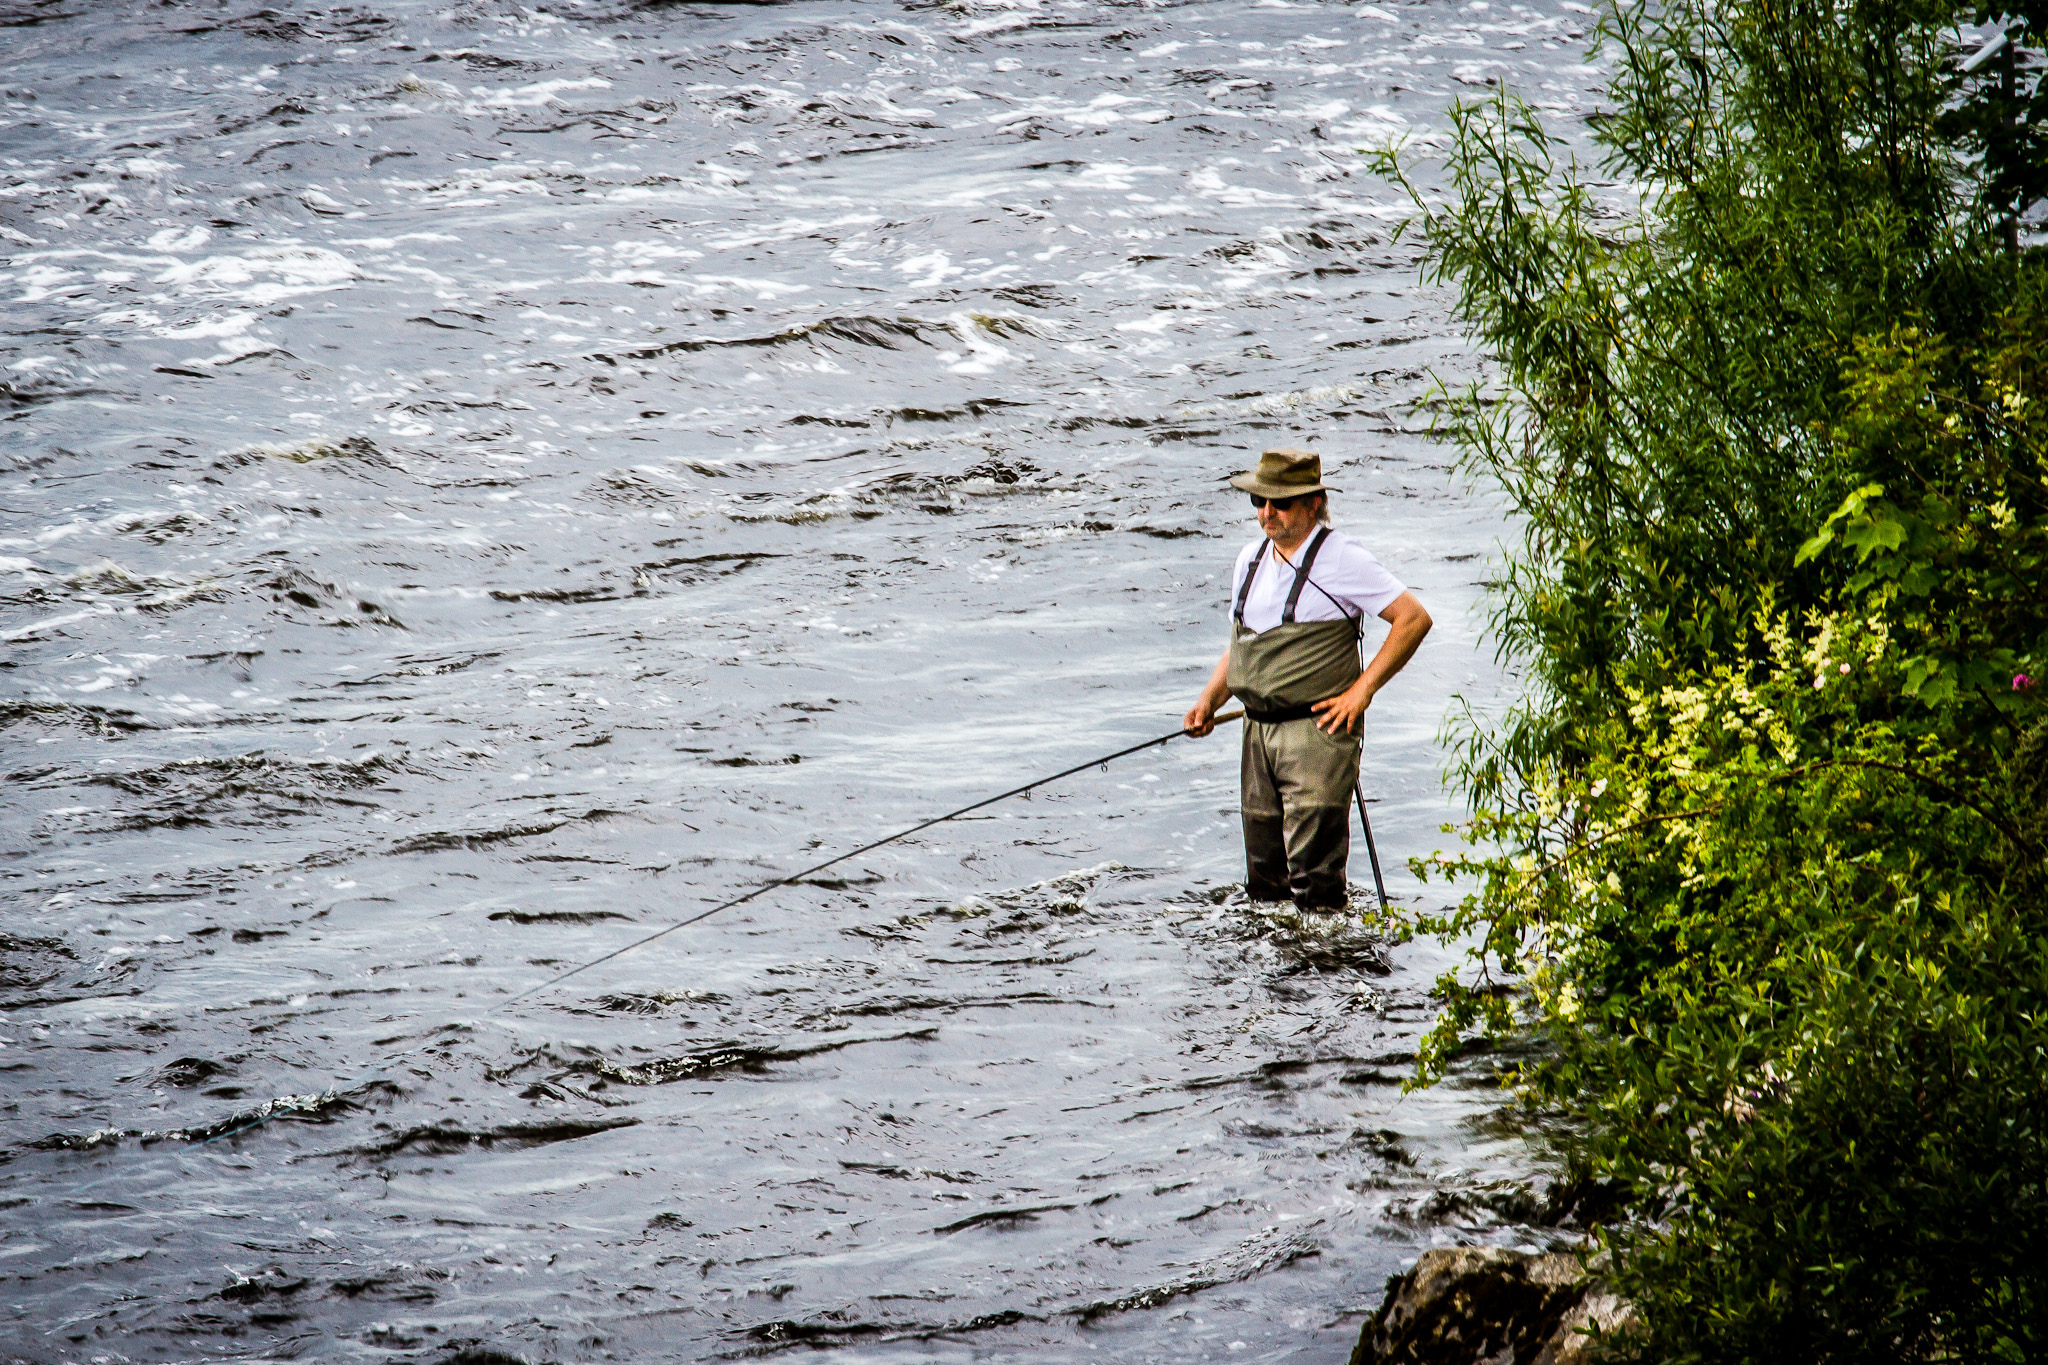 When where to fish in ireland for Fishing in ireland